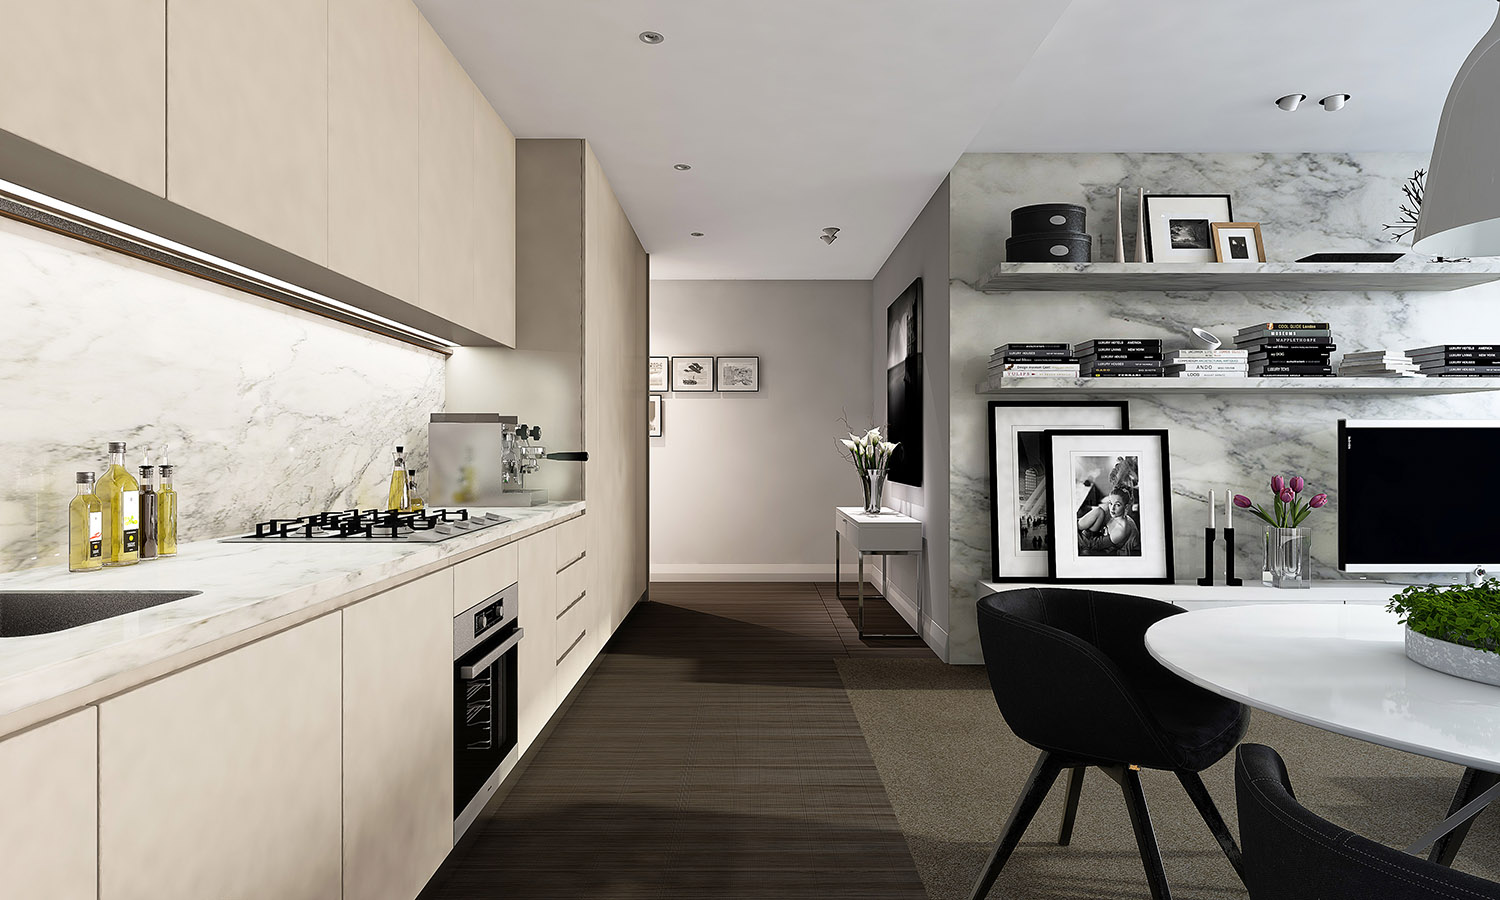 Studio Apartment Kitchen Design: Studio Apartment Interiors Inspiration